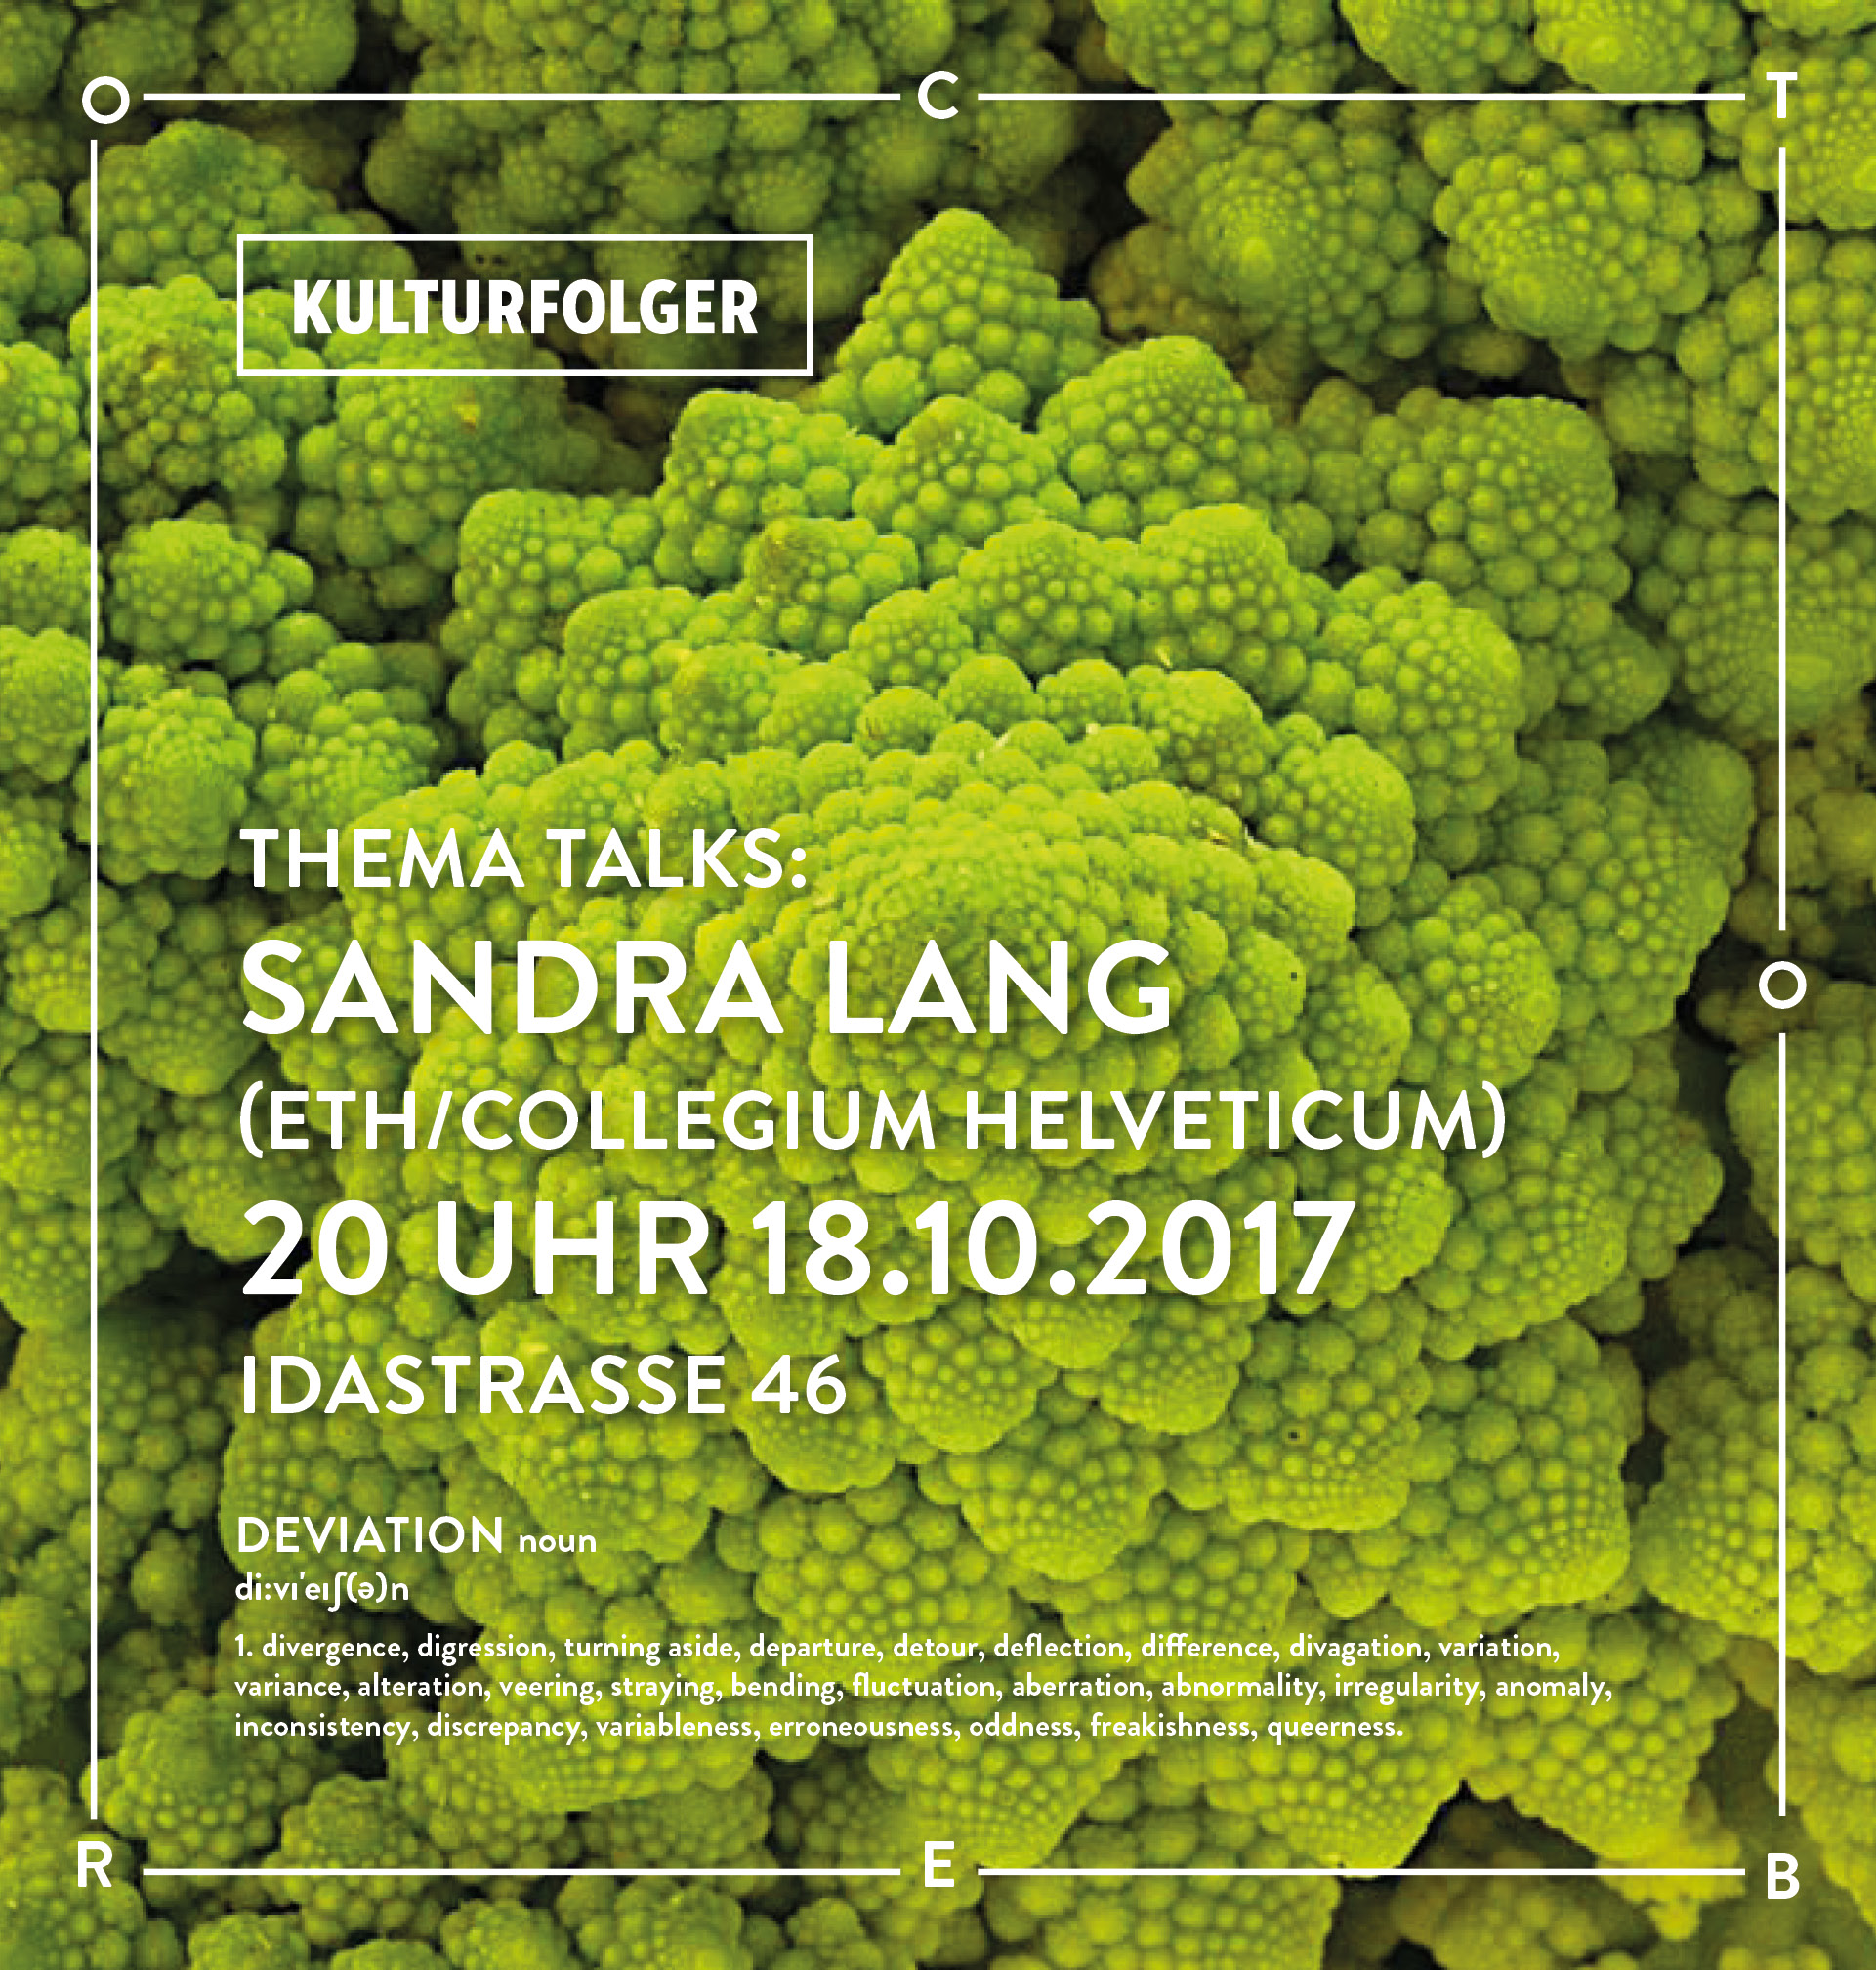 "Join us for Kulturfolger's ninth session of Thema Talks with Sandra Lang.       ABOUT:    Chirality a scientific narrative:  This talk will explore the topic of medical knowledge which is in the orchestra of sciences. Medical science is inferior and dedicated to the the ill, the sick, the degenerate, and the pathetic. Medicine is deviant and is it not the norm. The unspoken and implicit hierarchy infects the discipline and reflects the fossilized pre-ideas remaining from the paradigm of the unity of science.       BIO:    Sandra Lang, is a currently attaining her Ph.D. at the Ludwik Fleck Center of the Collegium Helveticum. She is working on a scientific sociological sub project on chirality as a molecular property and related implications for the transfer of knowledge in biomedicine. Between October 2013 and March 2014, she worked as an intern at the Ludwik Fleck Center and assisted Martina Schlünder within the framework of the project ""The Serological Works of Ludwik Fleck (1896-196) and her relevance for today's biomedical practice and for the history and theory of biomedicine ». Within the framework of this project, her master thesis was also developed under the theme ""gain in translational medicine through the theory and practice of Ludwik Fleck"". She accrued her master's degree in sociology at the University of Freiburg she focused on the fields of knowledge and science sociology as well as gender studies."